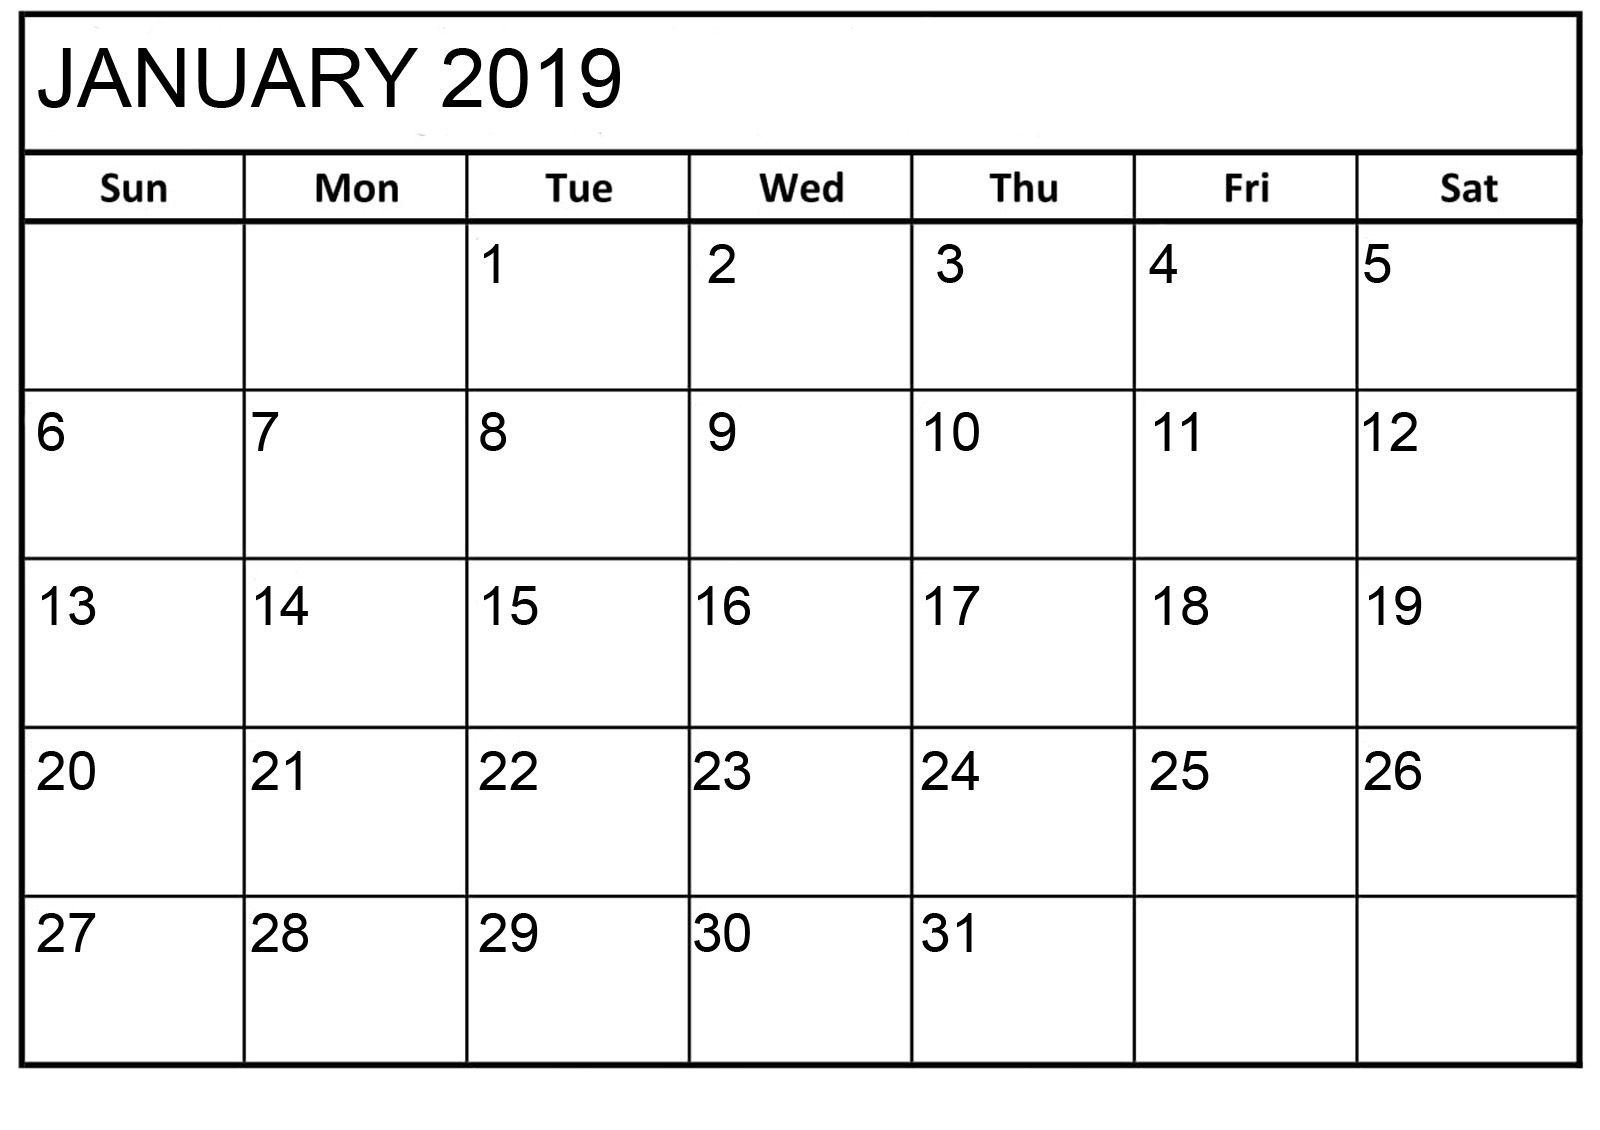 January 2019 Downloadable Calendar January 2019 Calendar Printable HTML | January 2019 Calendar